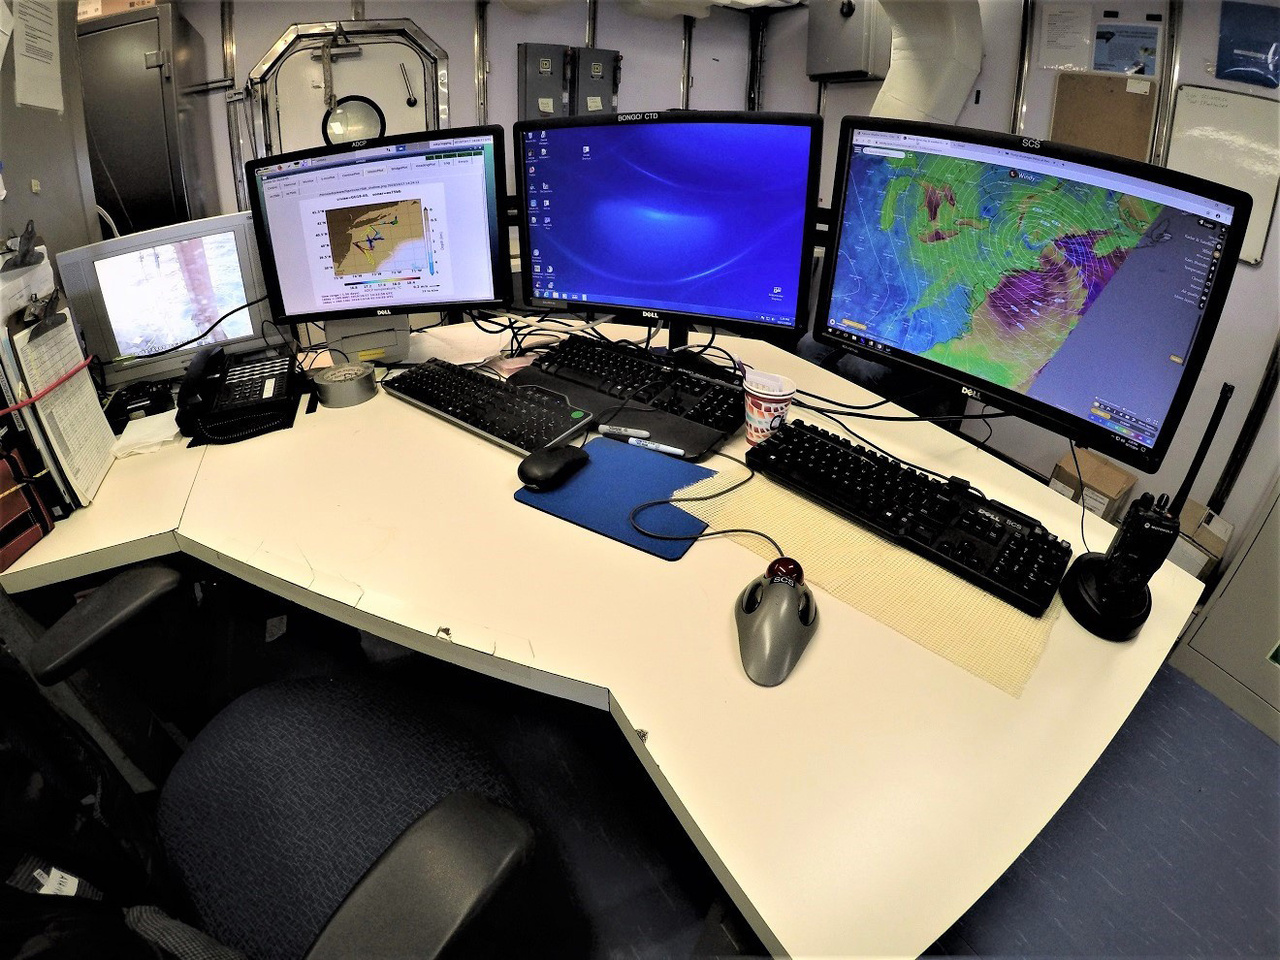 multiple computer monitors ready to display real-time data on seawater composition